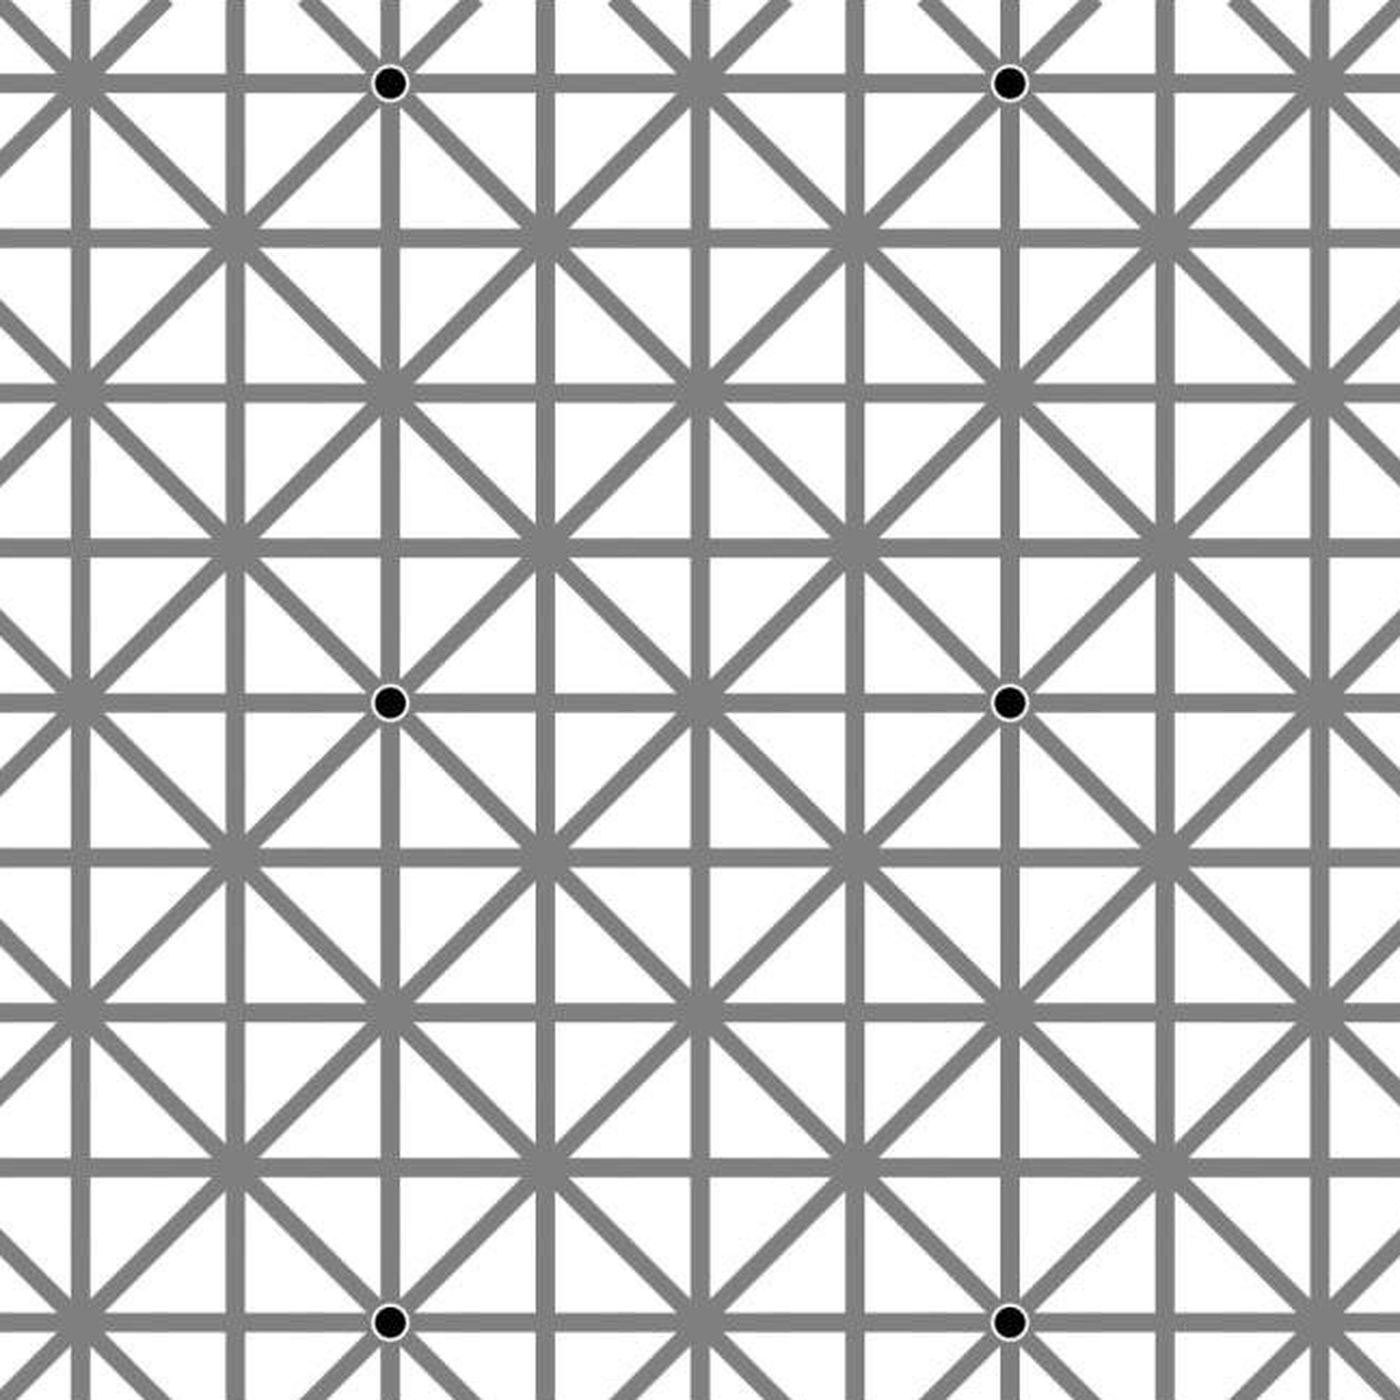 Here's why you can't see all twelve black dots in this optical